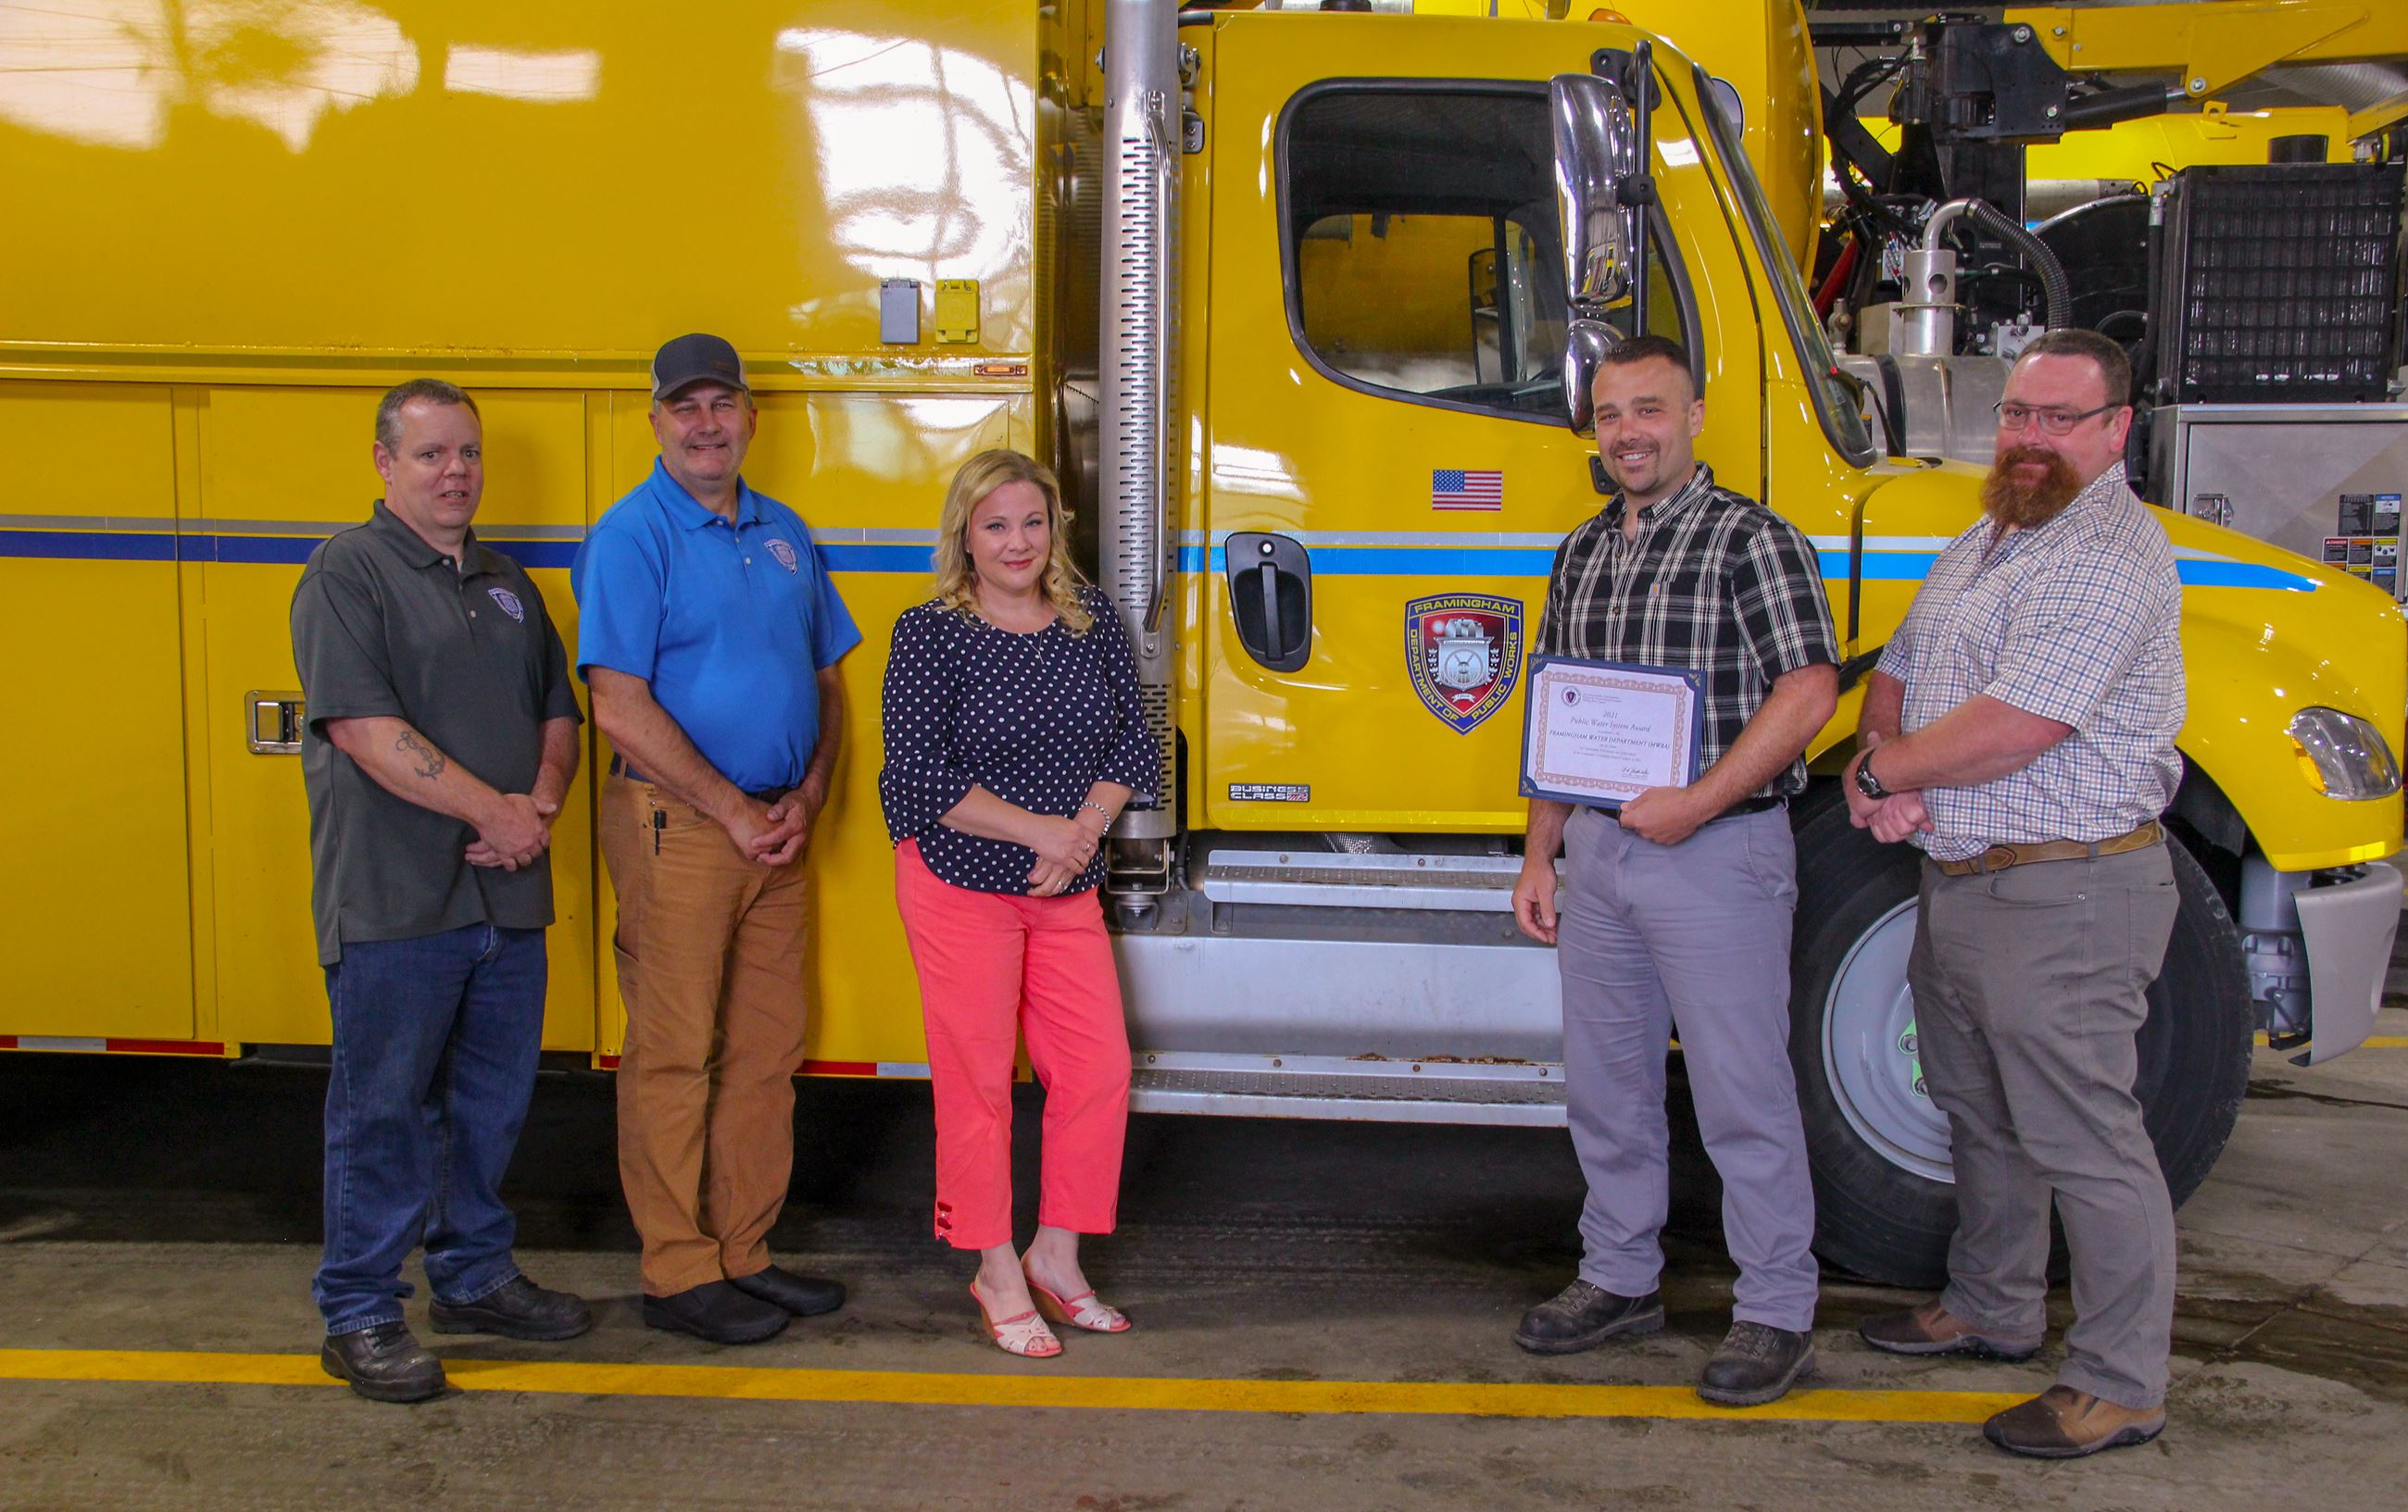 Image of the Water Department Management Staff and Operations Managers standing near a yellow truck